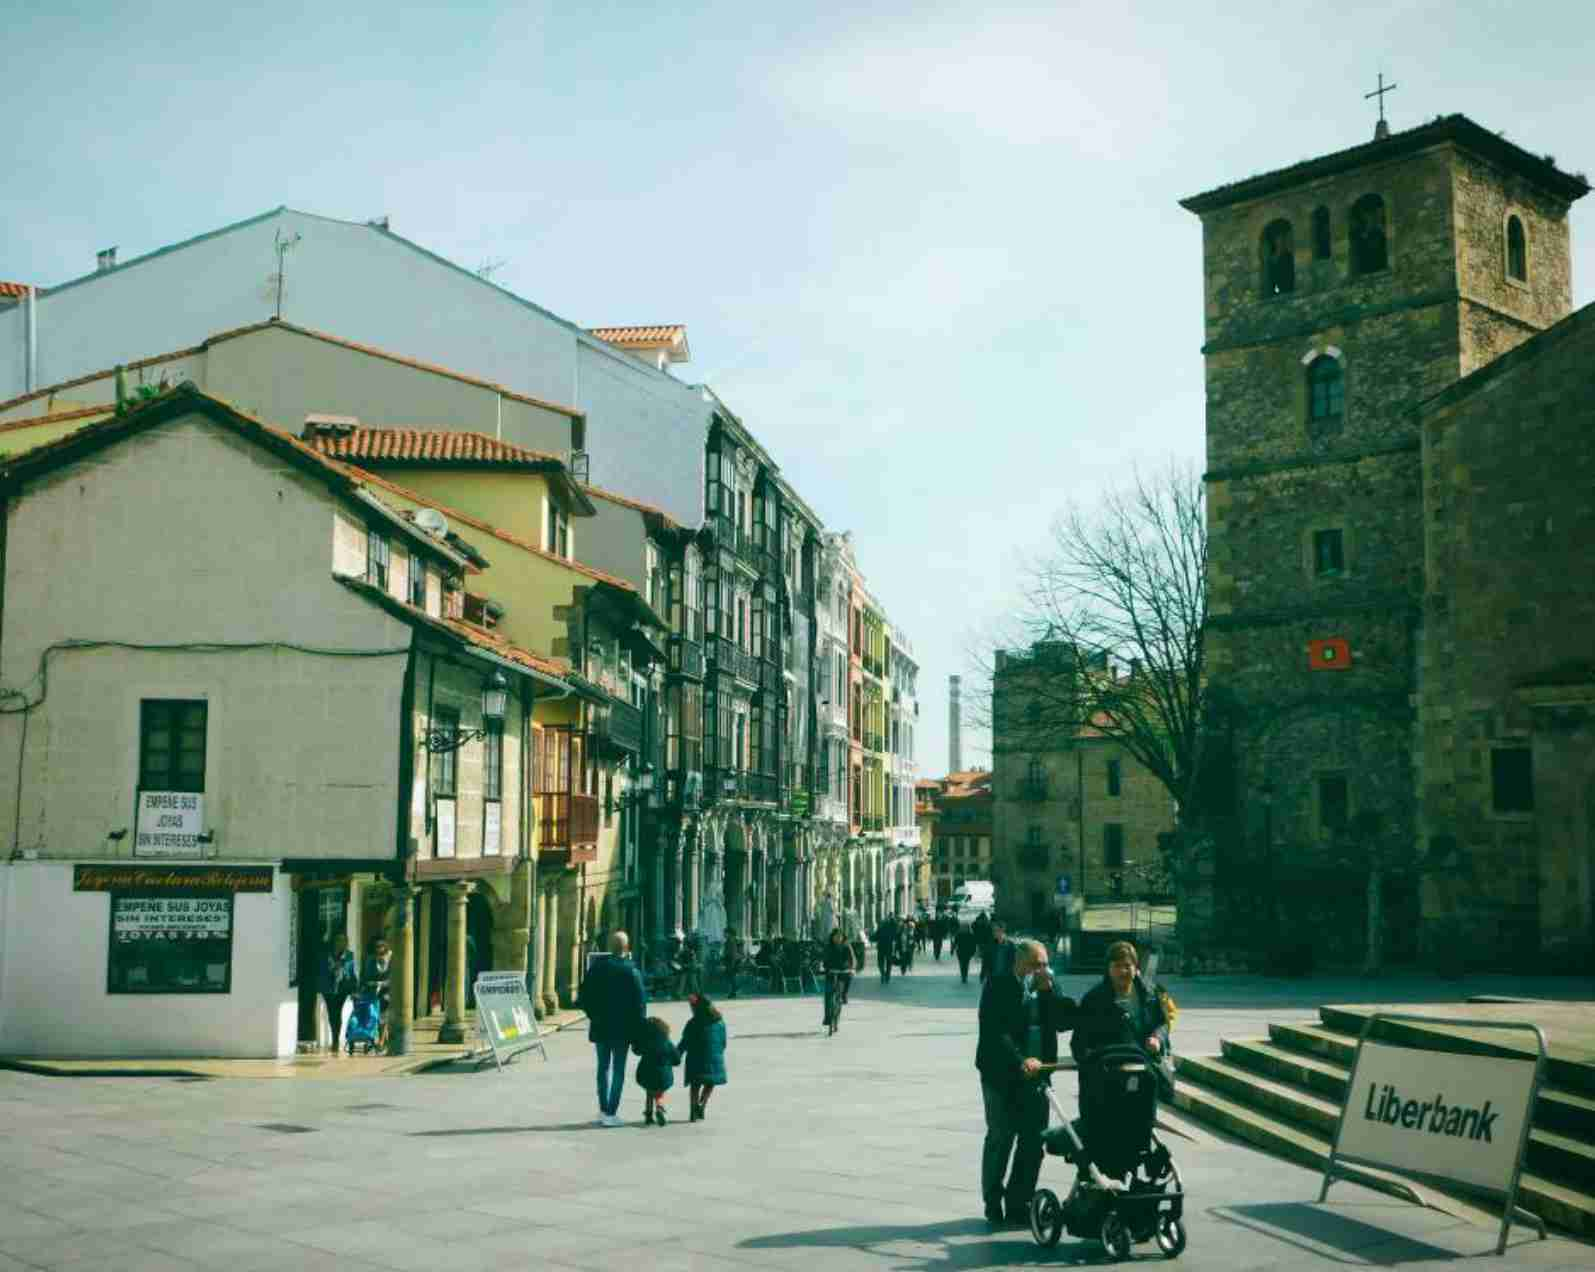 Square in Avilés